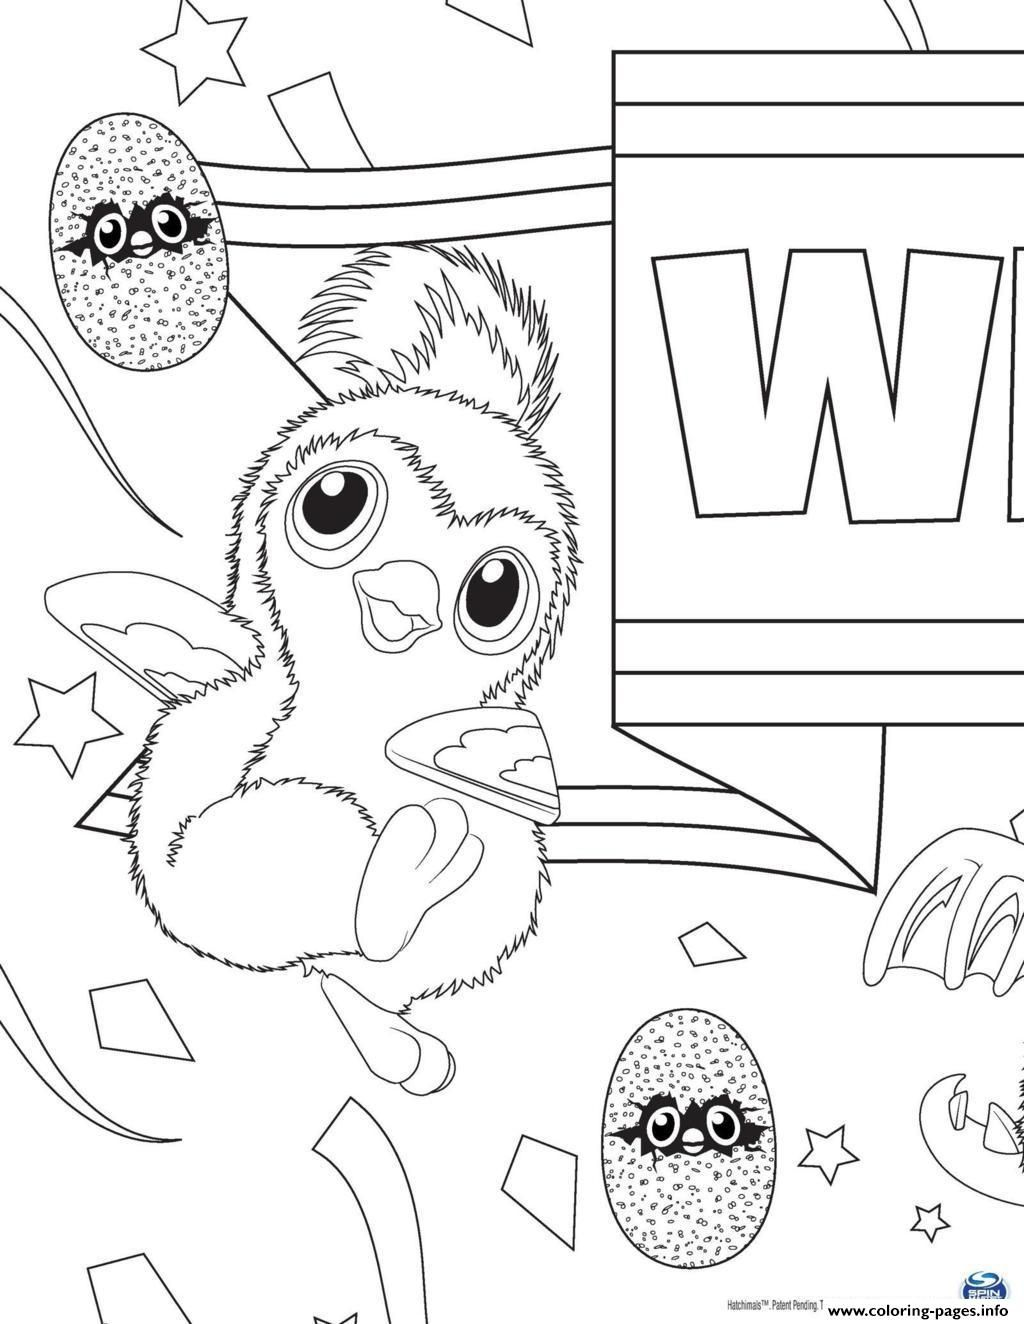 Pink coloring pages - Print Hatchy Hatchimals Penguala Pink Coloring Pages